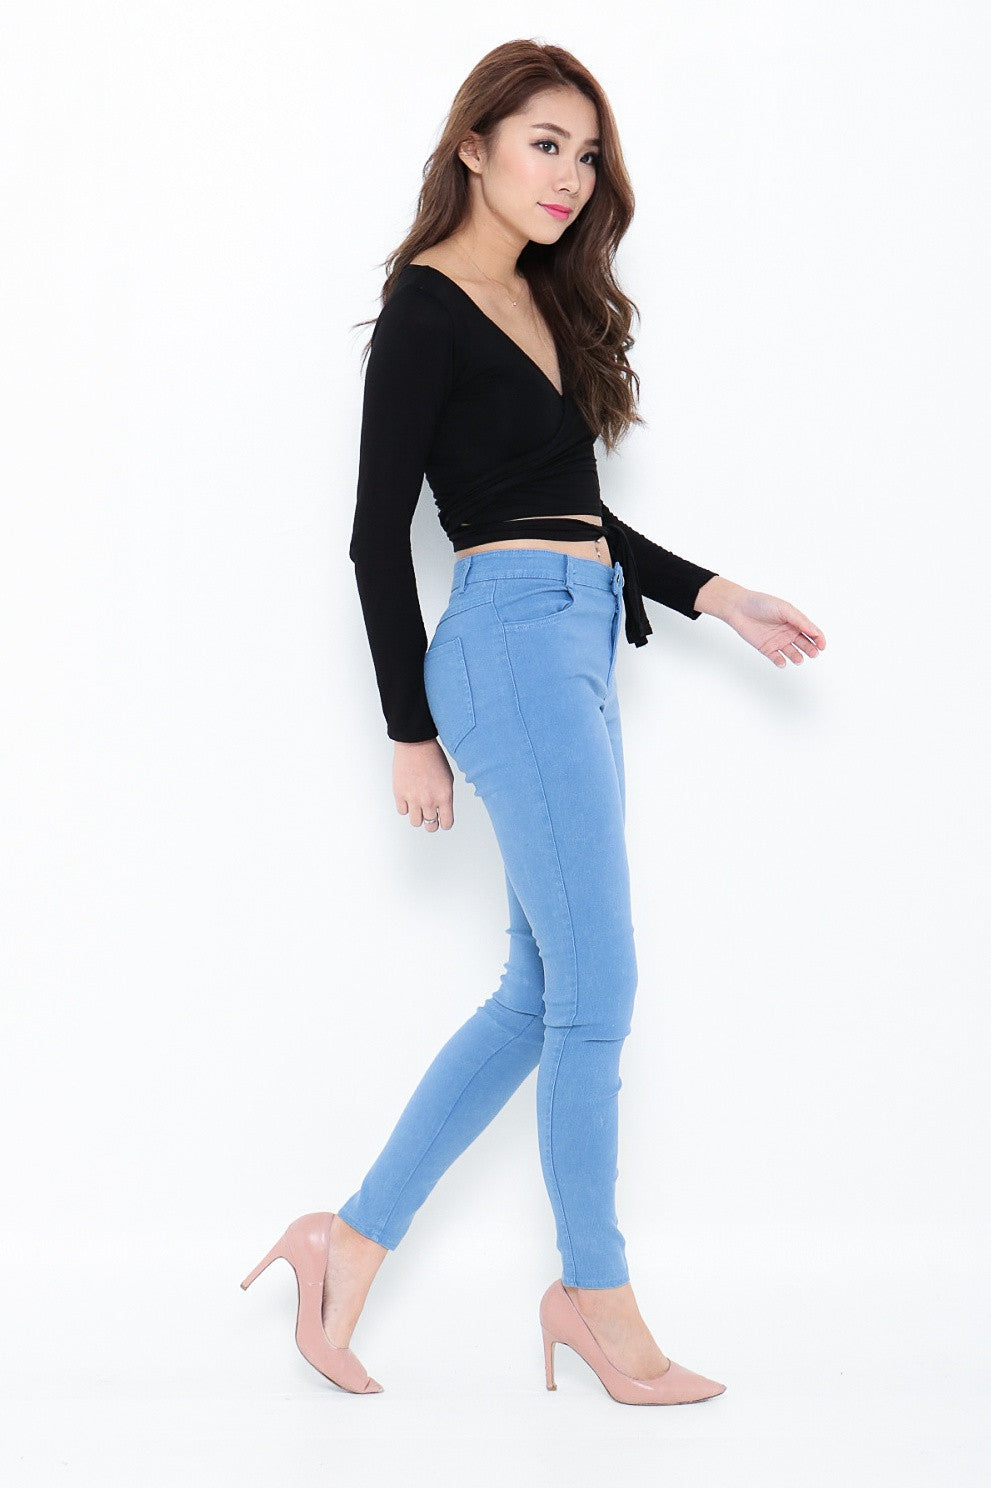 (RESTOCKED) WRAP AROUND TOP IN BLACK - TOPAZETTE